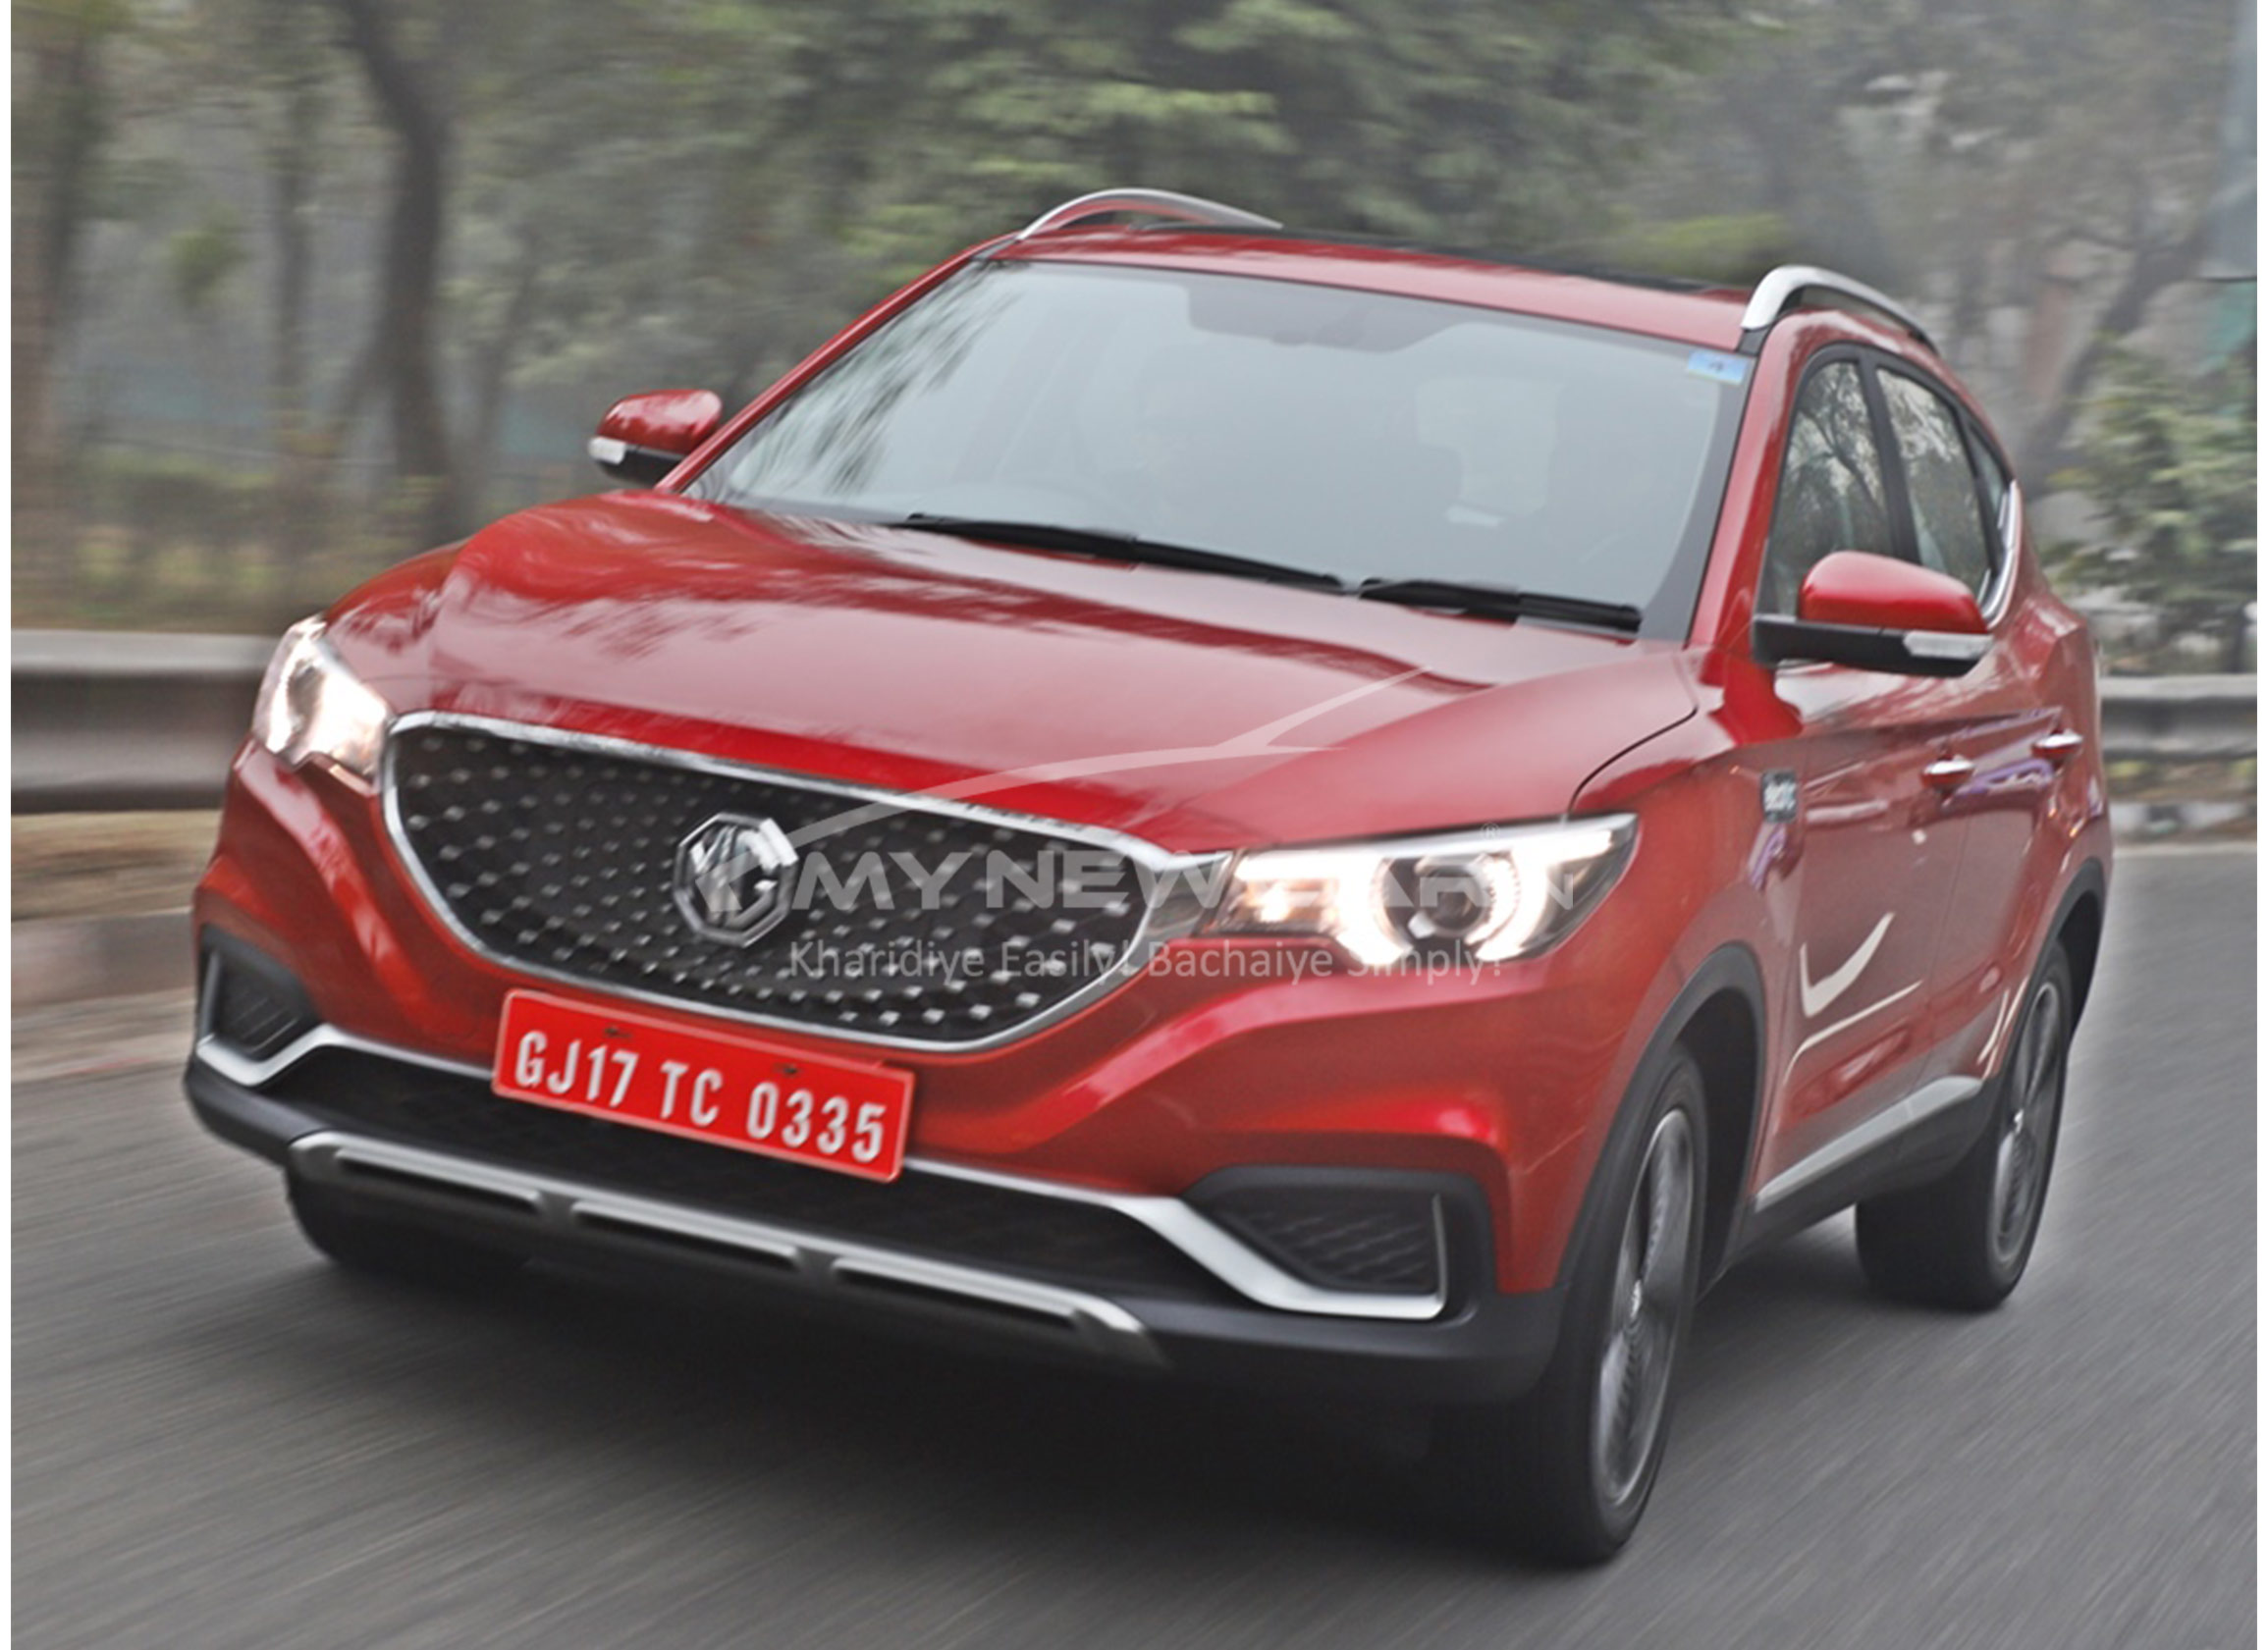 mg zs electric car image